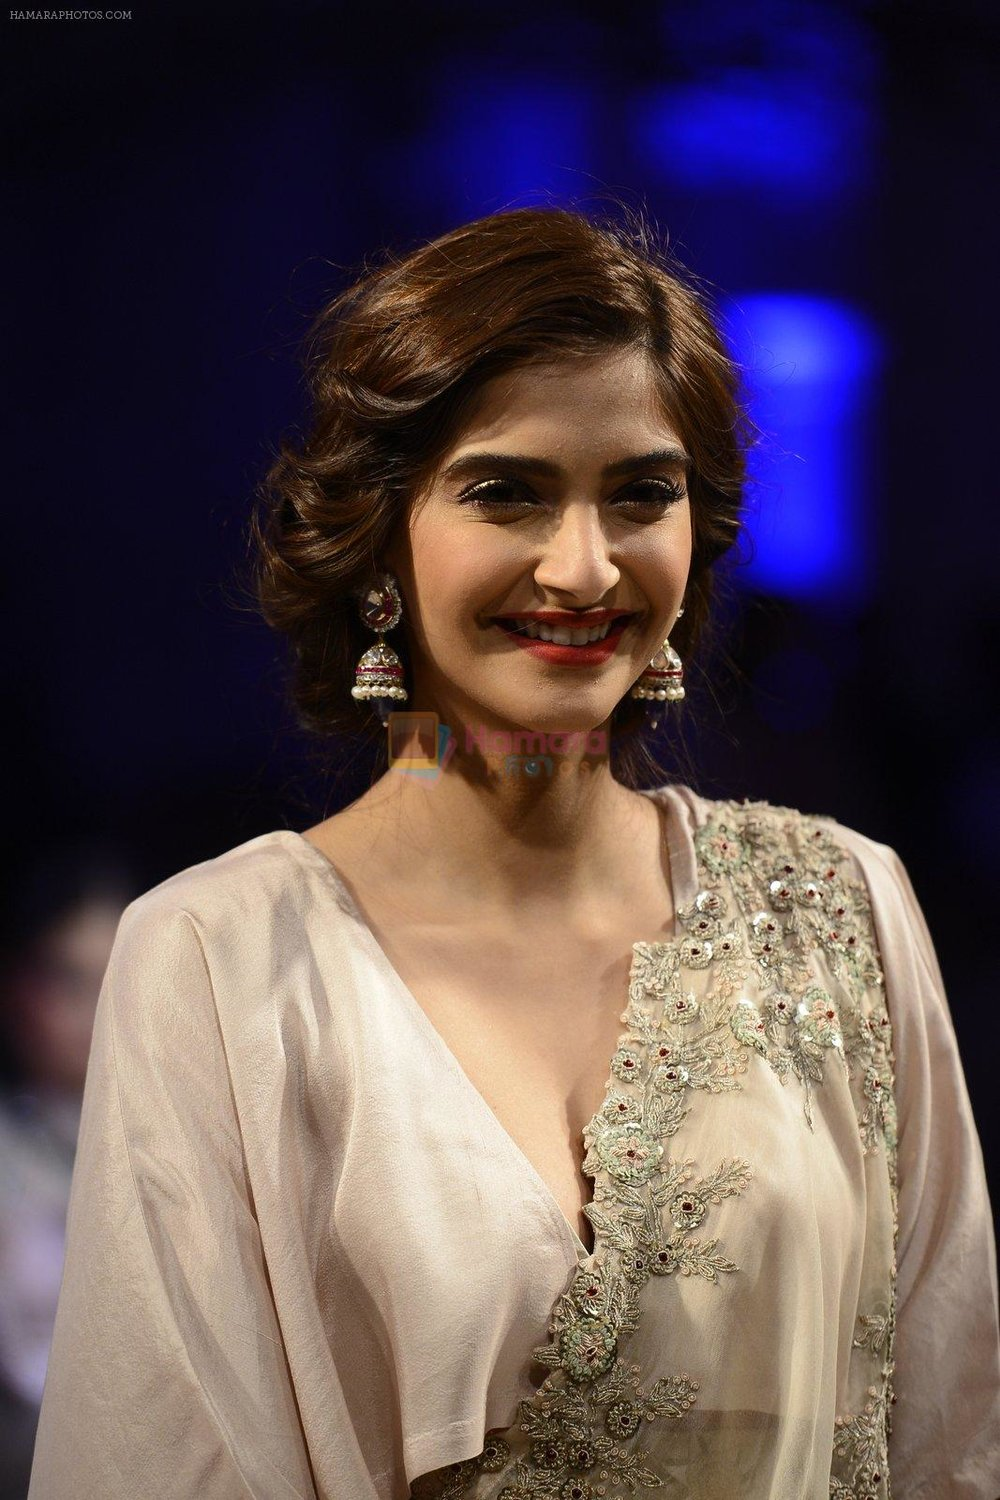 Sonam-Kapoor-during-Anamika-Khanna-showcase-When-Time-Stood-Still-at-the-FDCI-India-Couture-Week-2016-on-22-July-2016-1.jpg